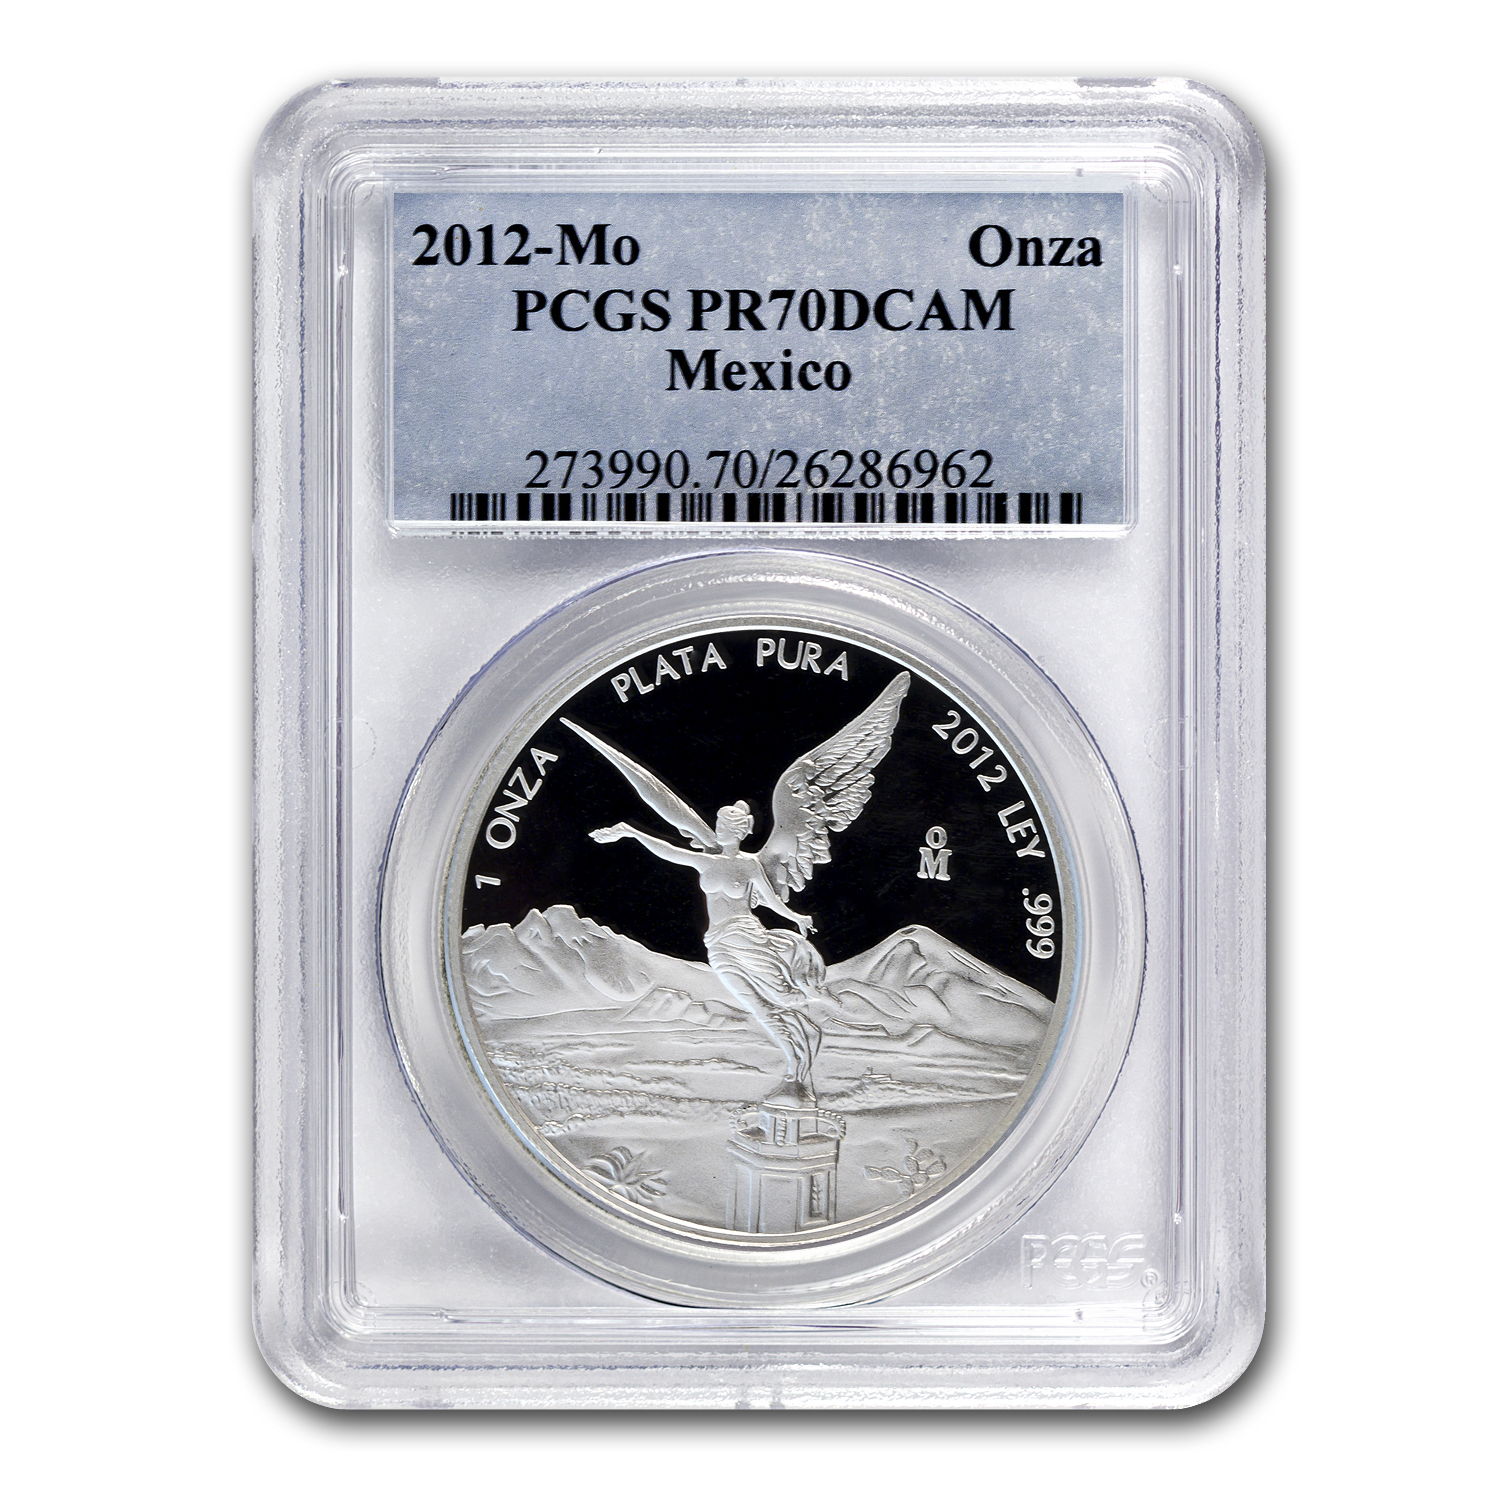 2012 Mexico 1 oz Proof Silver Libertad PR-70 PCGS